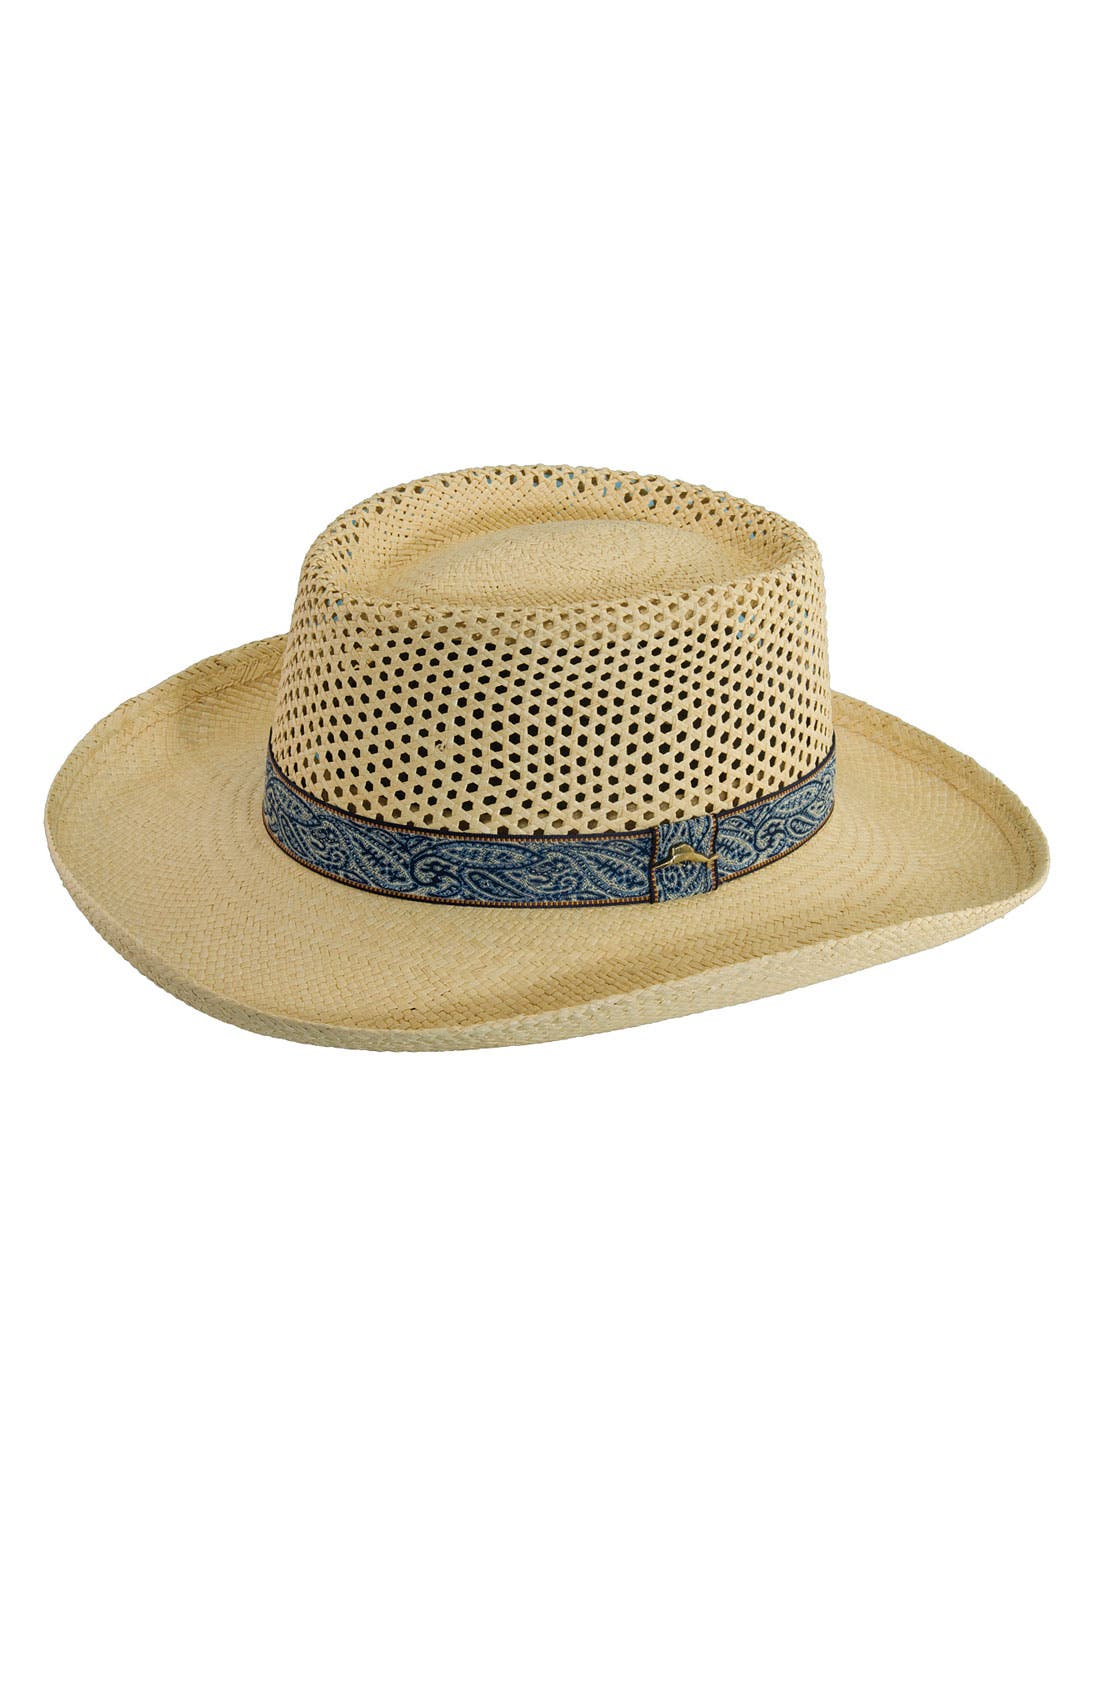 Alternate Image 1 Selected - Tommy Bahama Paisley Band Panama Straw Fedora